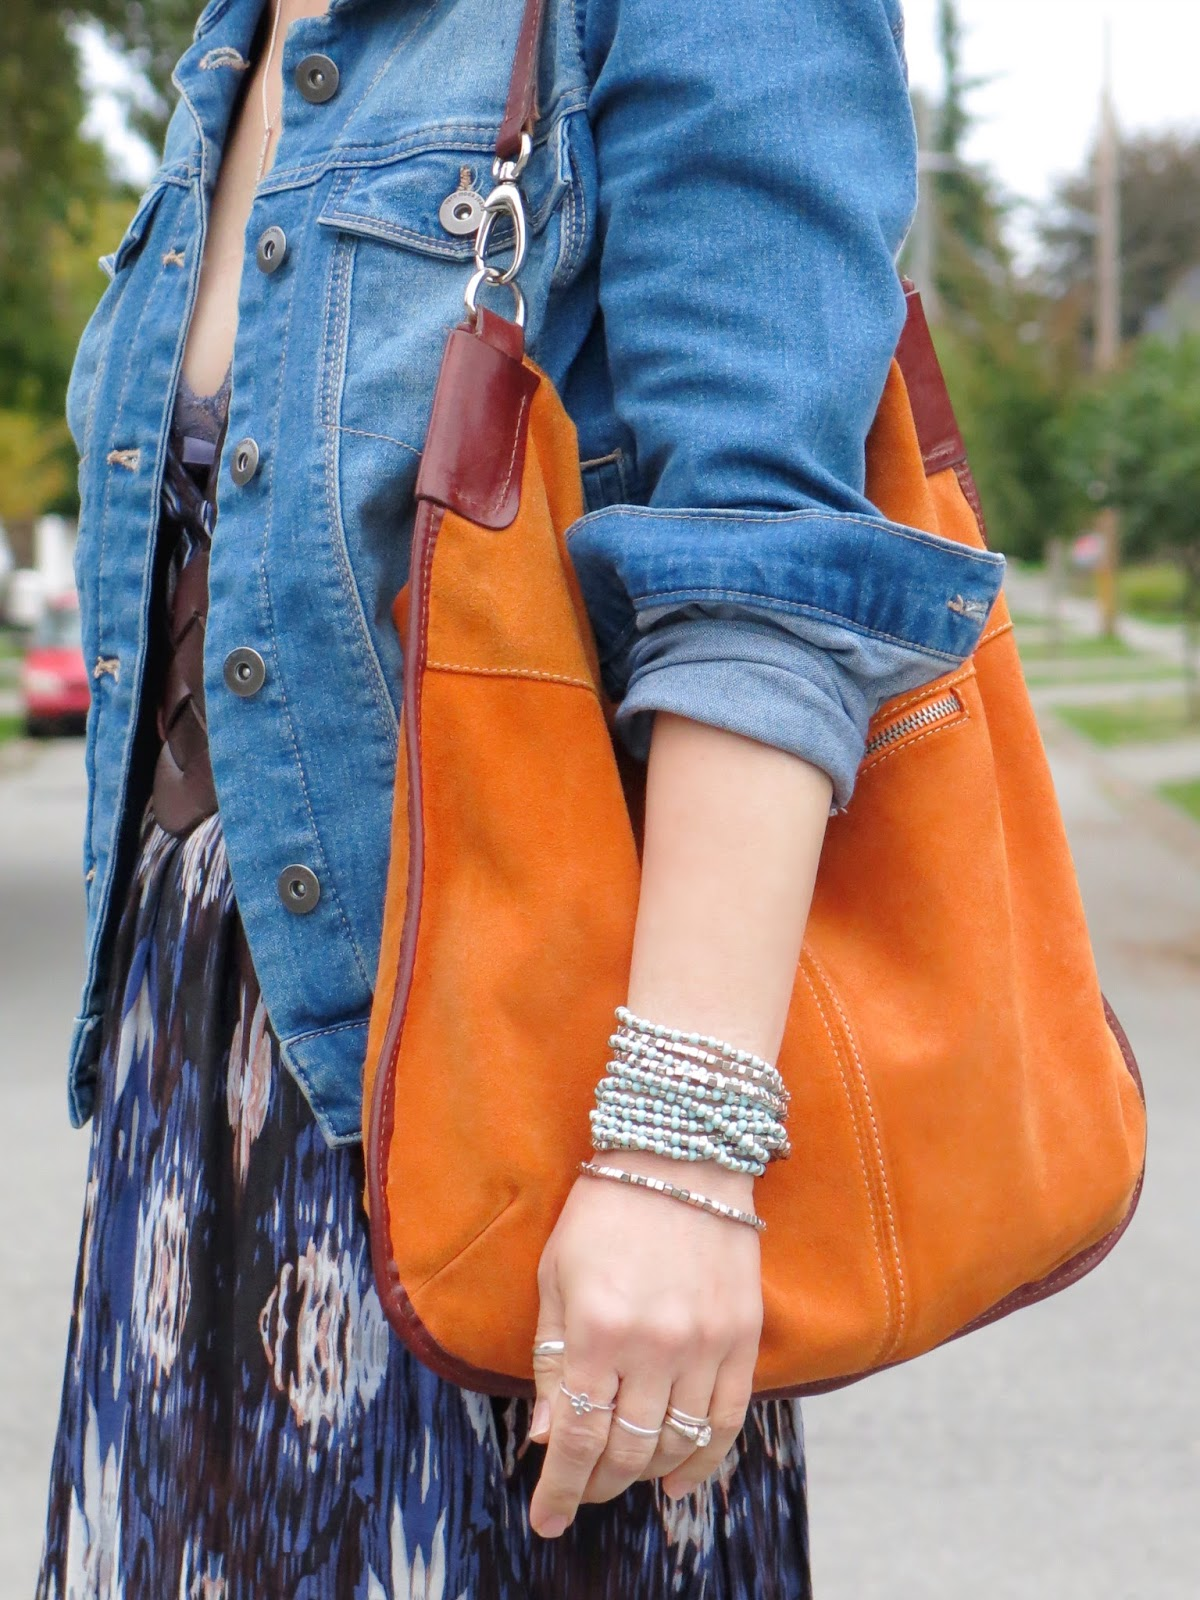 printed maxi-dress, denim jacket, and orange suede bag